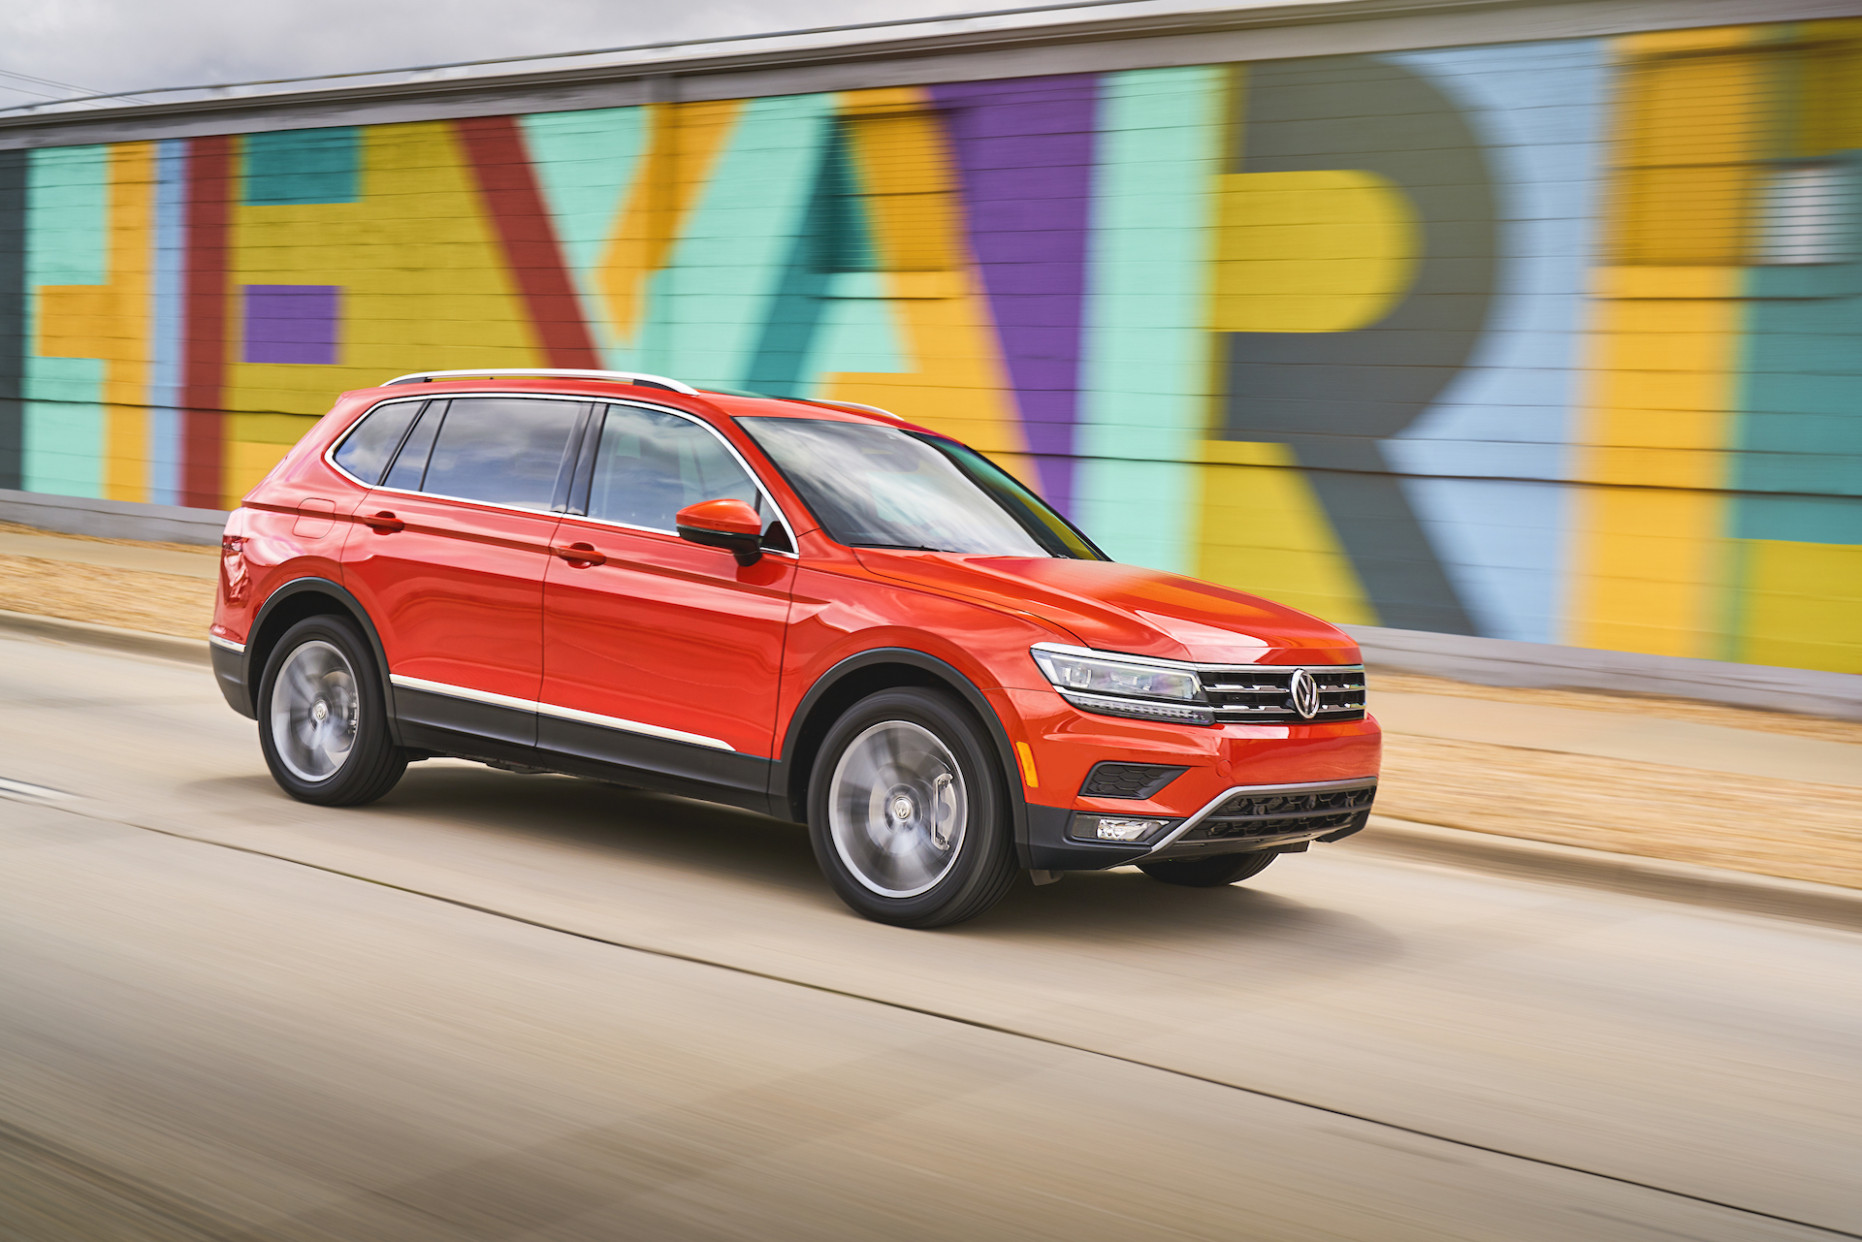 8 Volkswagen Tiguan (VW) Review, Ratings, Specs, Prices, and ..